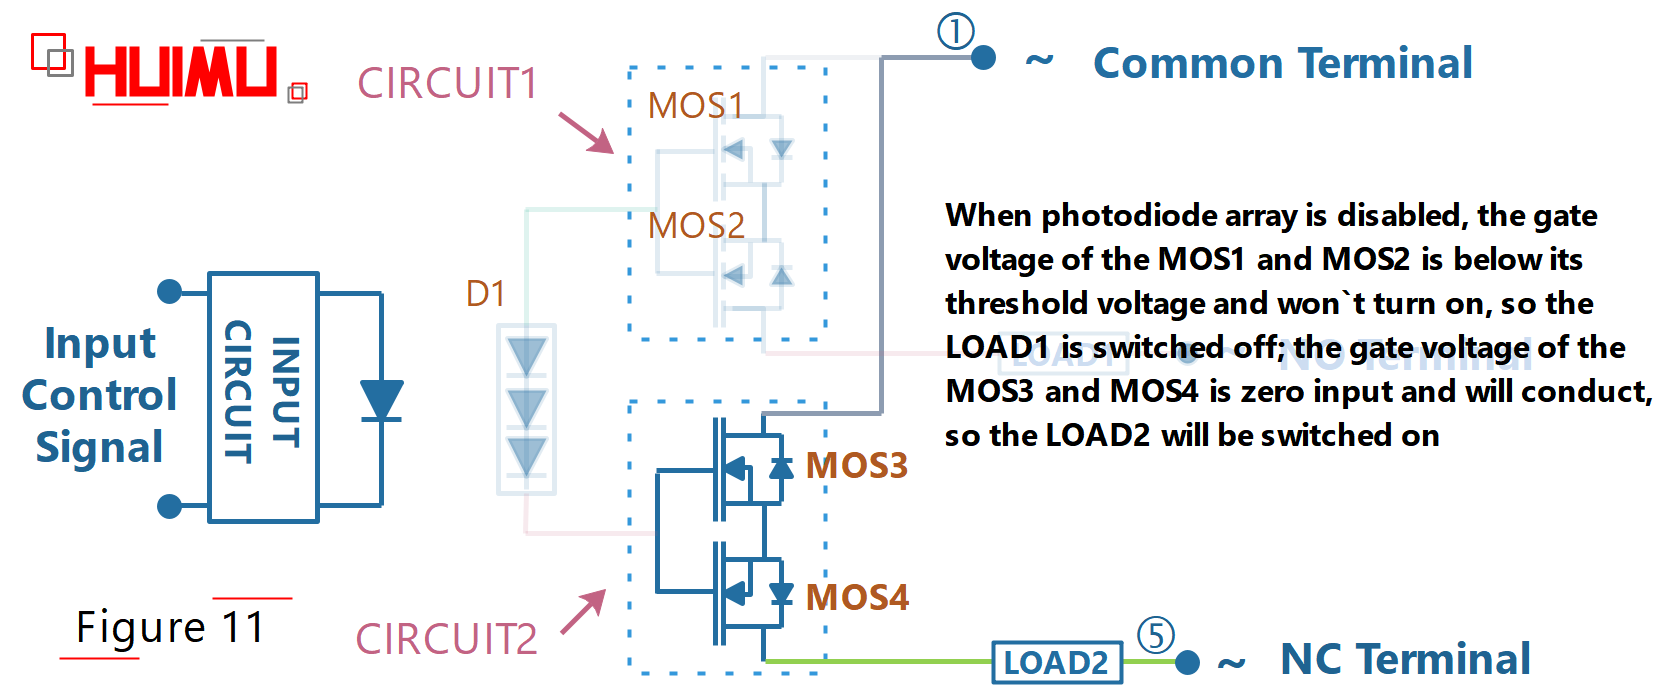 photodiode-array SPDT solid state relay circuit diagram, when the switch is turned off at AC power supply; how does a single pole double throw switch work, how to wire a single pole double throw switch, single pole double throw light switch, spdt rf switch ic, spdt ssr, spdt switch diagram. More detail via www.@huimultd.com